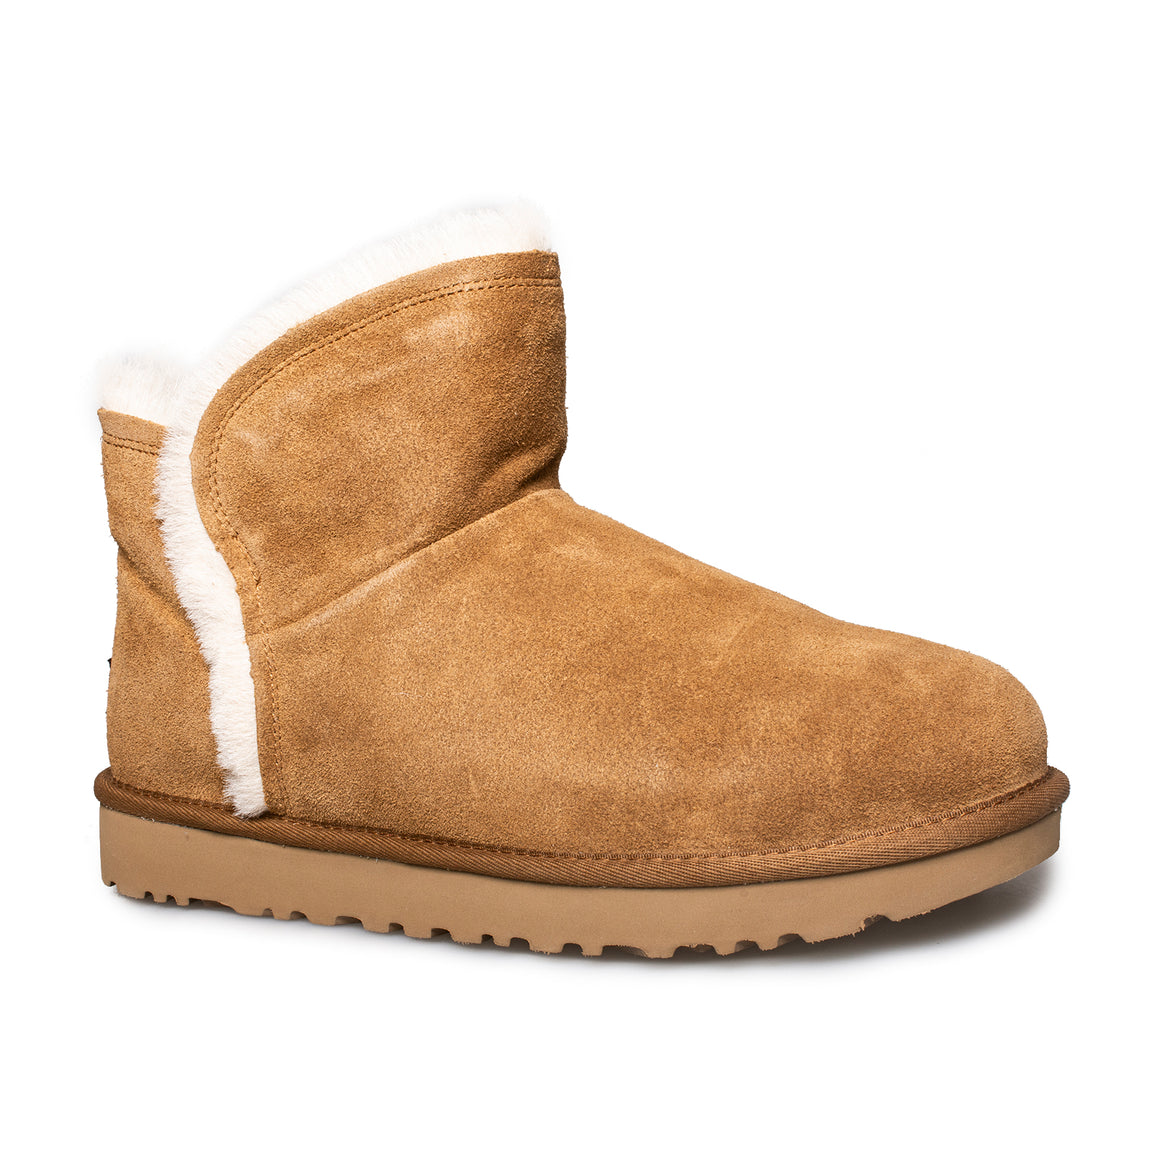 UGG Classic Mini High Low Chestnut Boots - Women's